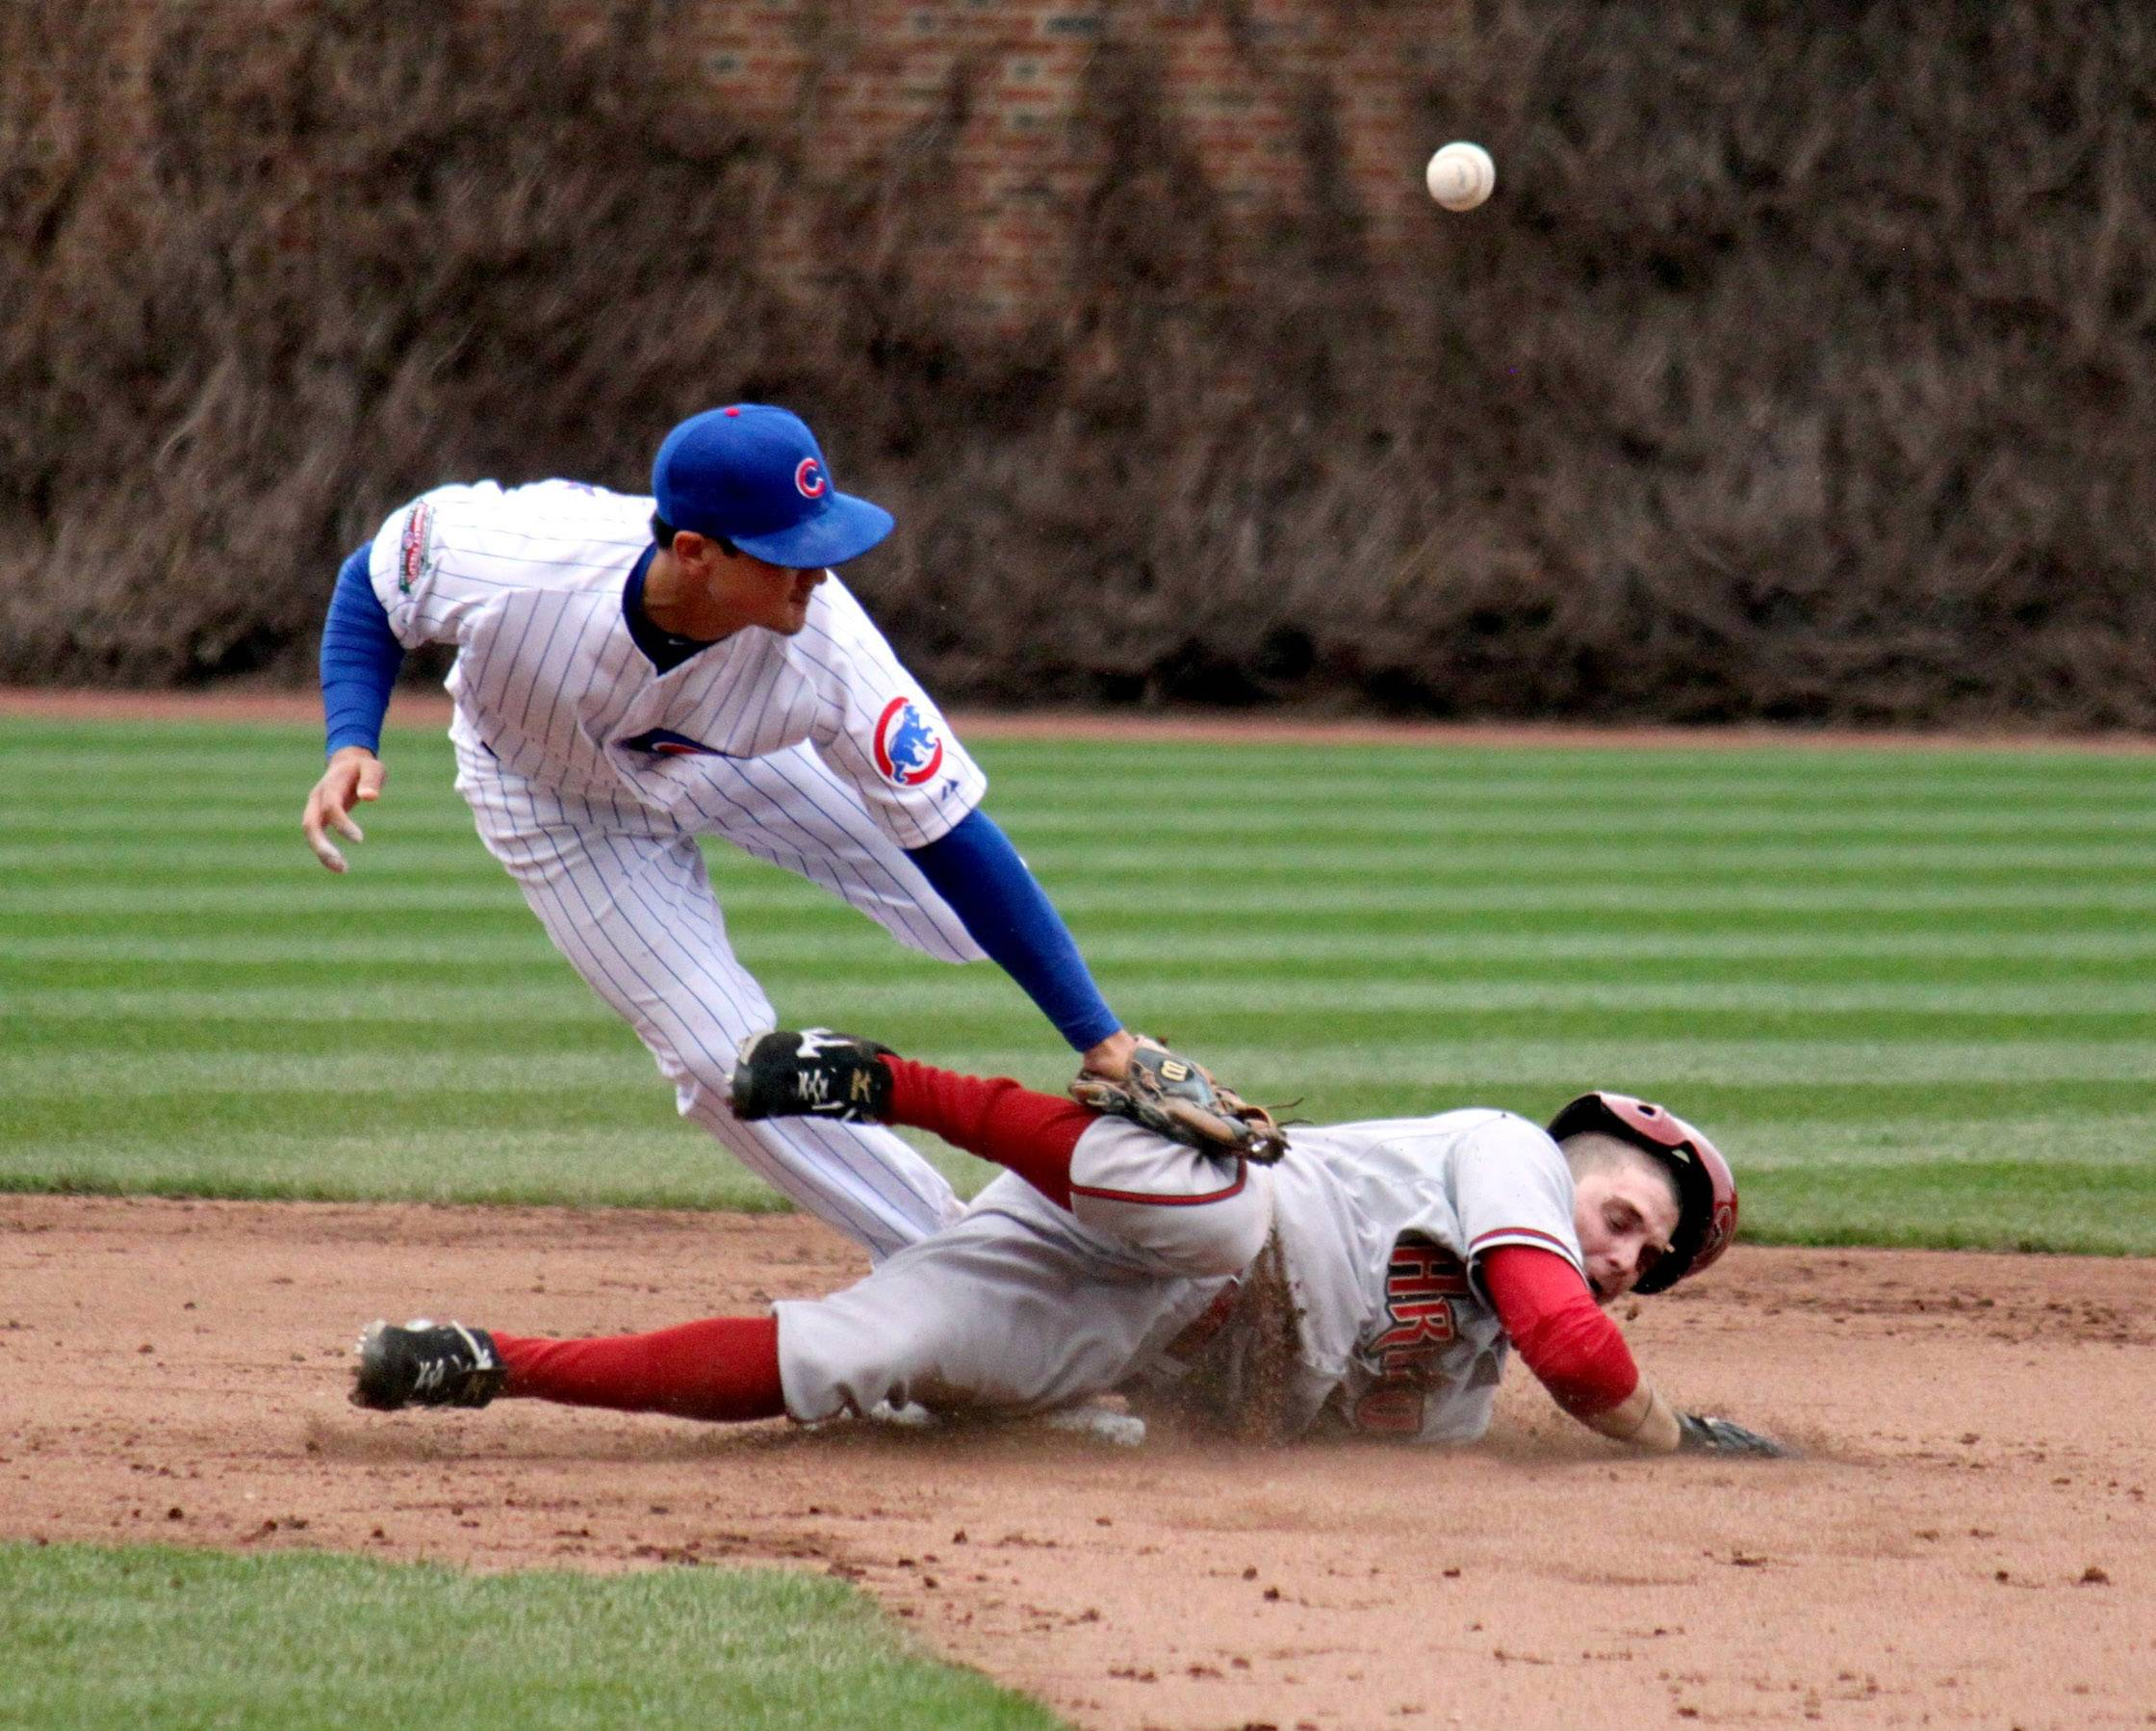 Tony Campana of the Arizona Diamondbacks steals second base against the Chicago Cubs as the ball gets away from Darwin Barney on April 24.